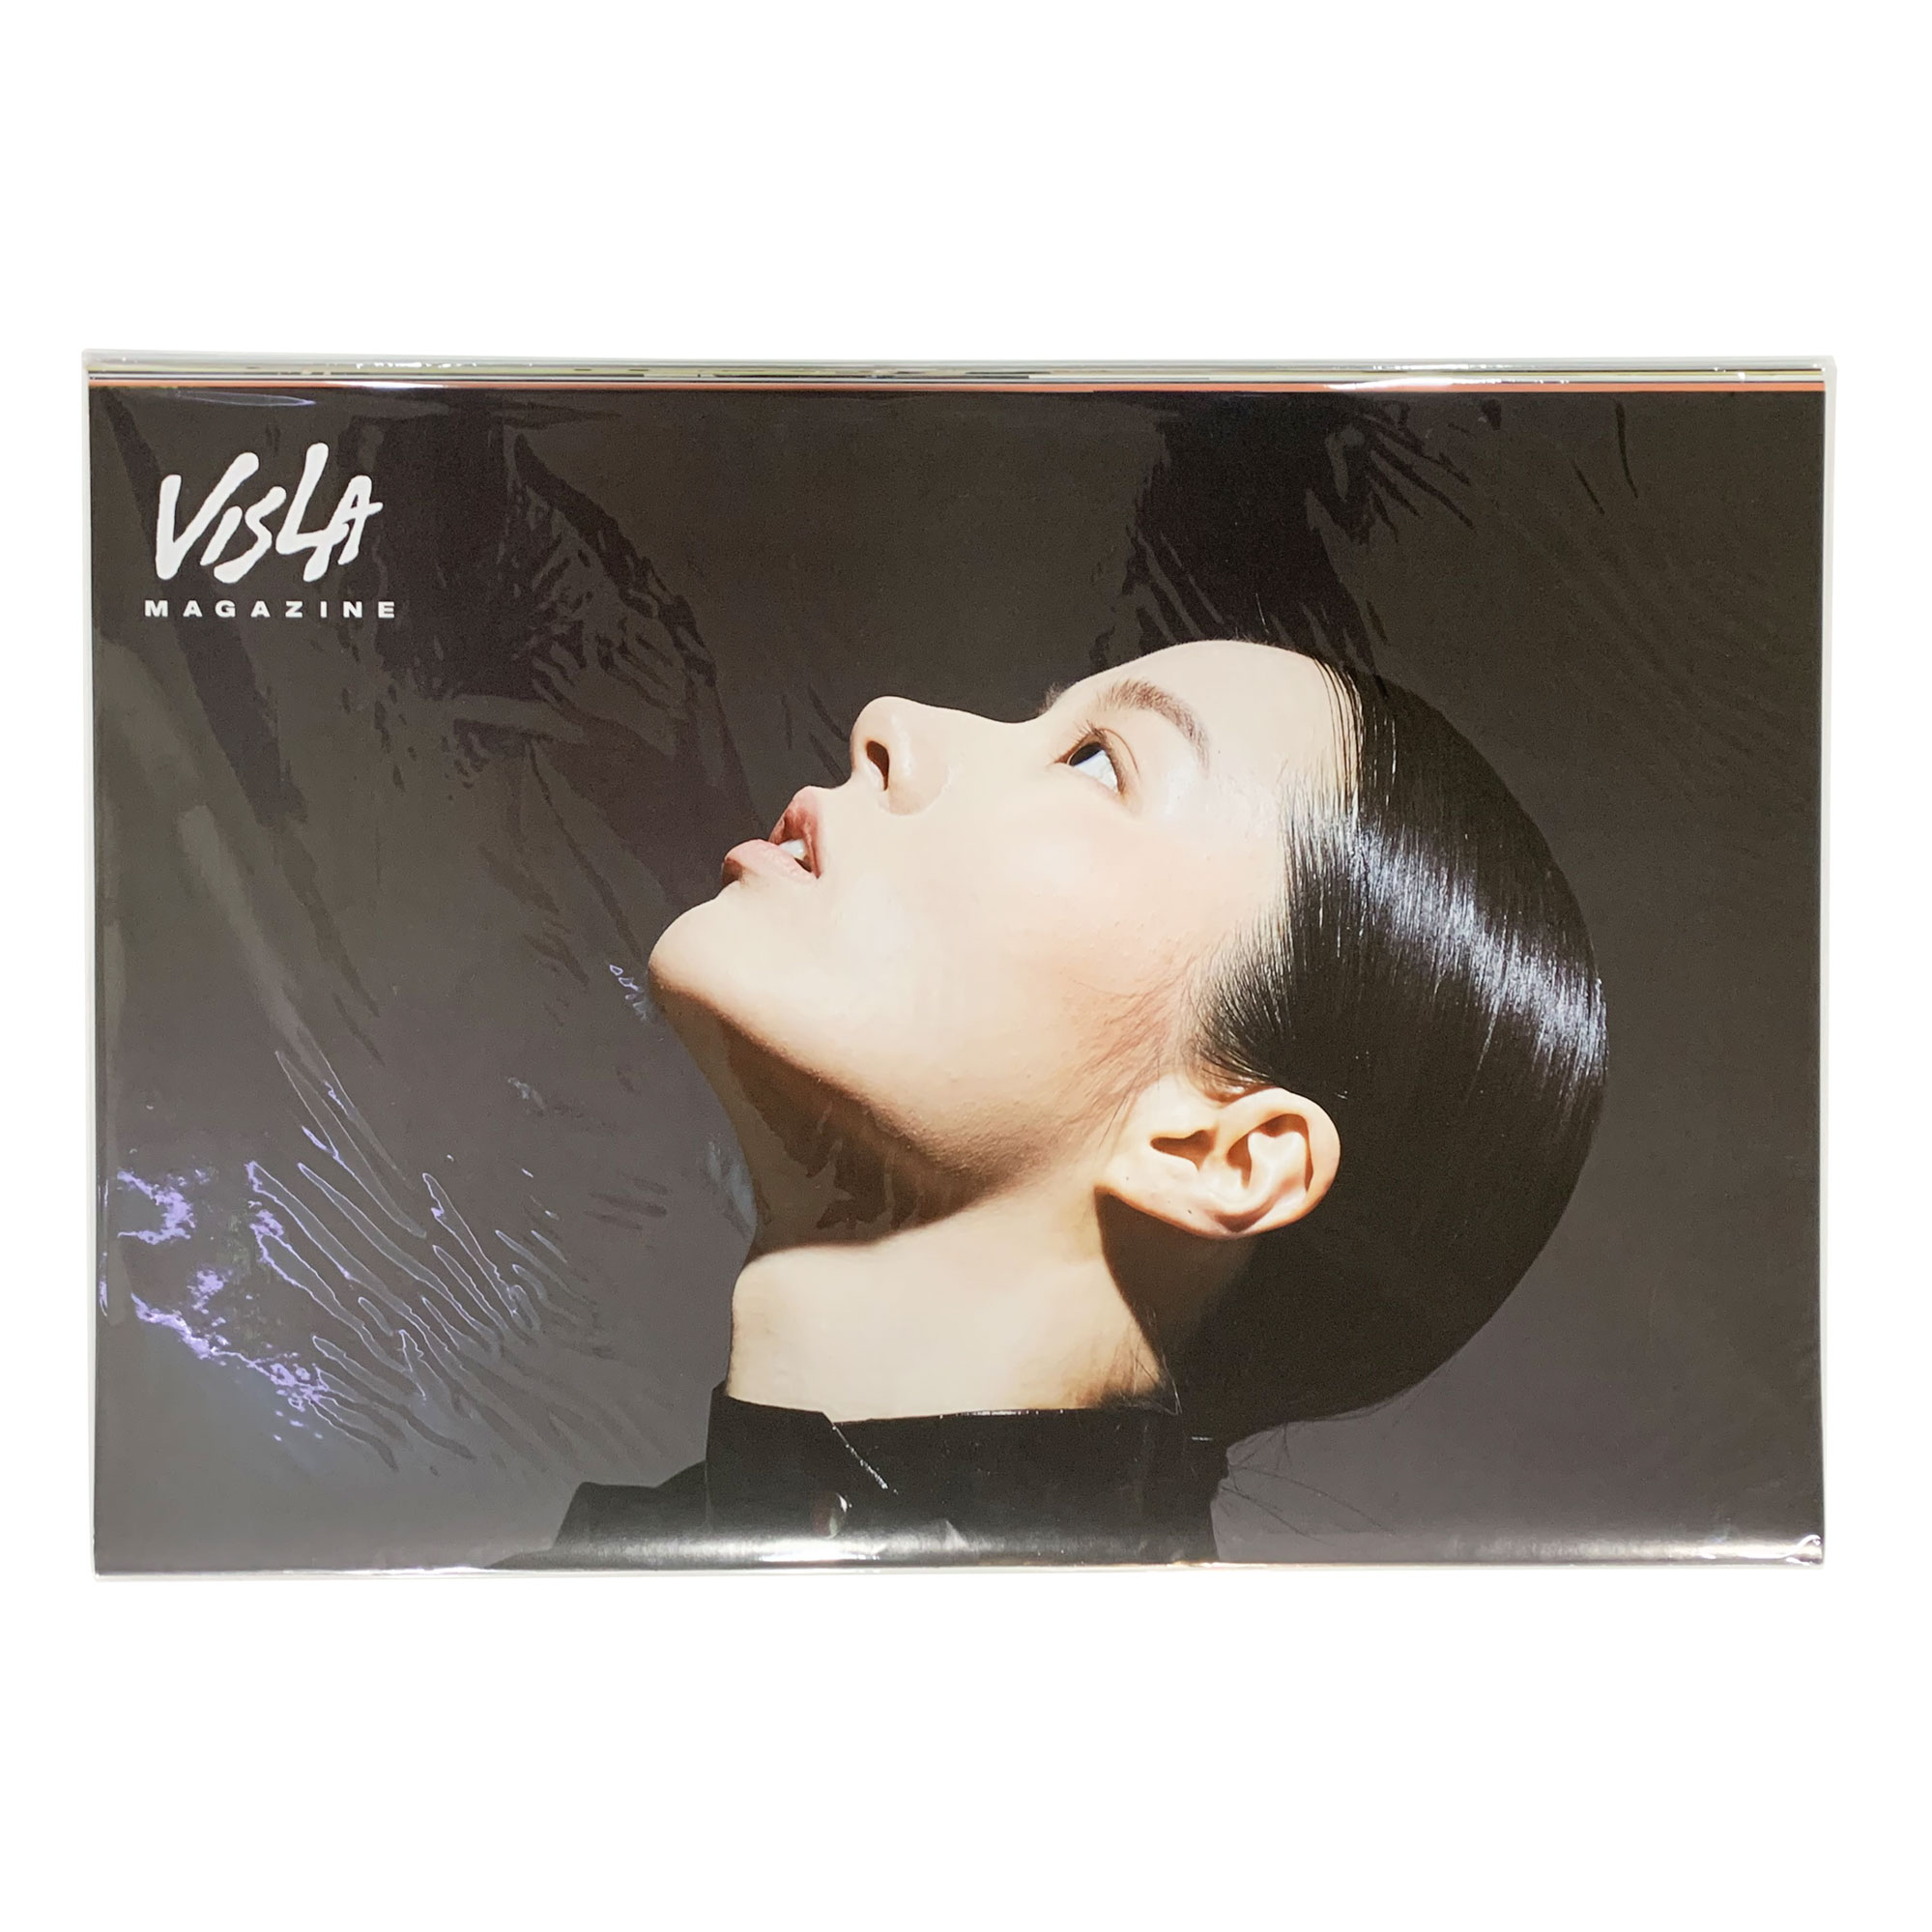 VISLA MAGAZINE ISSUE 11